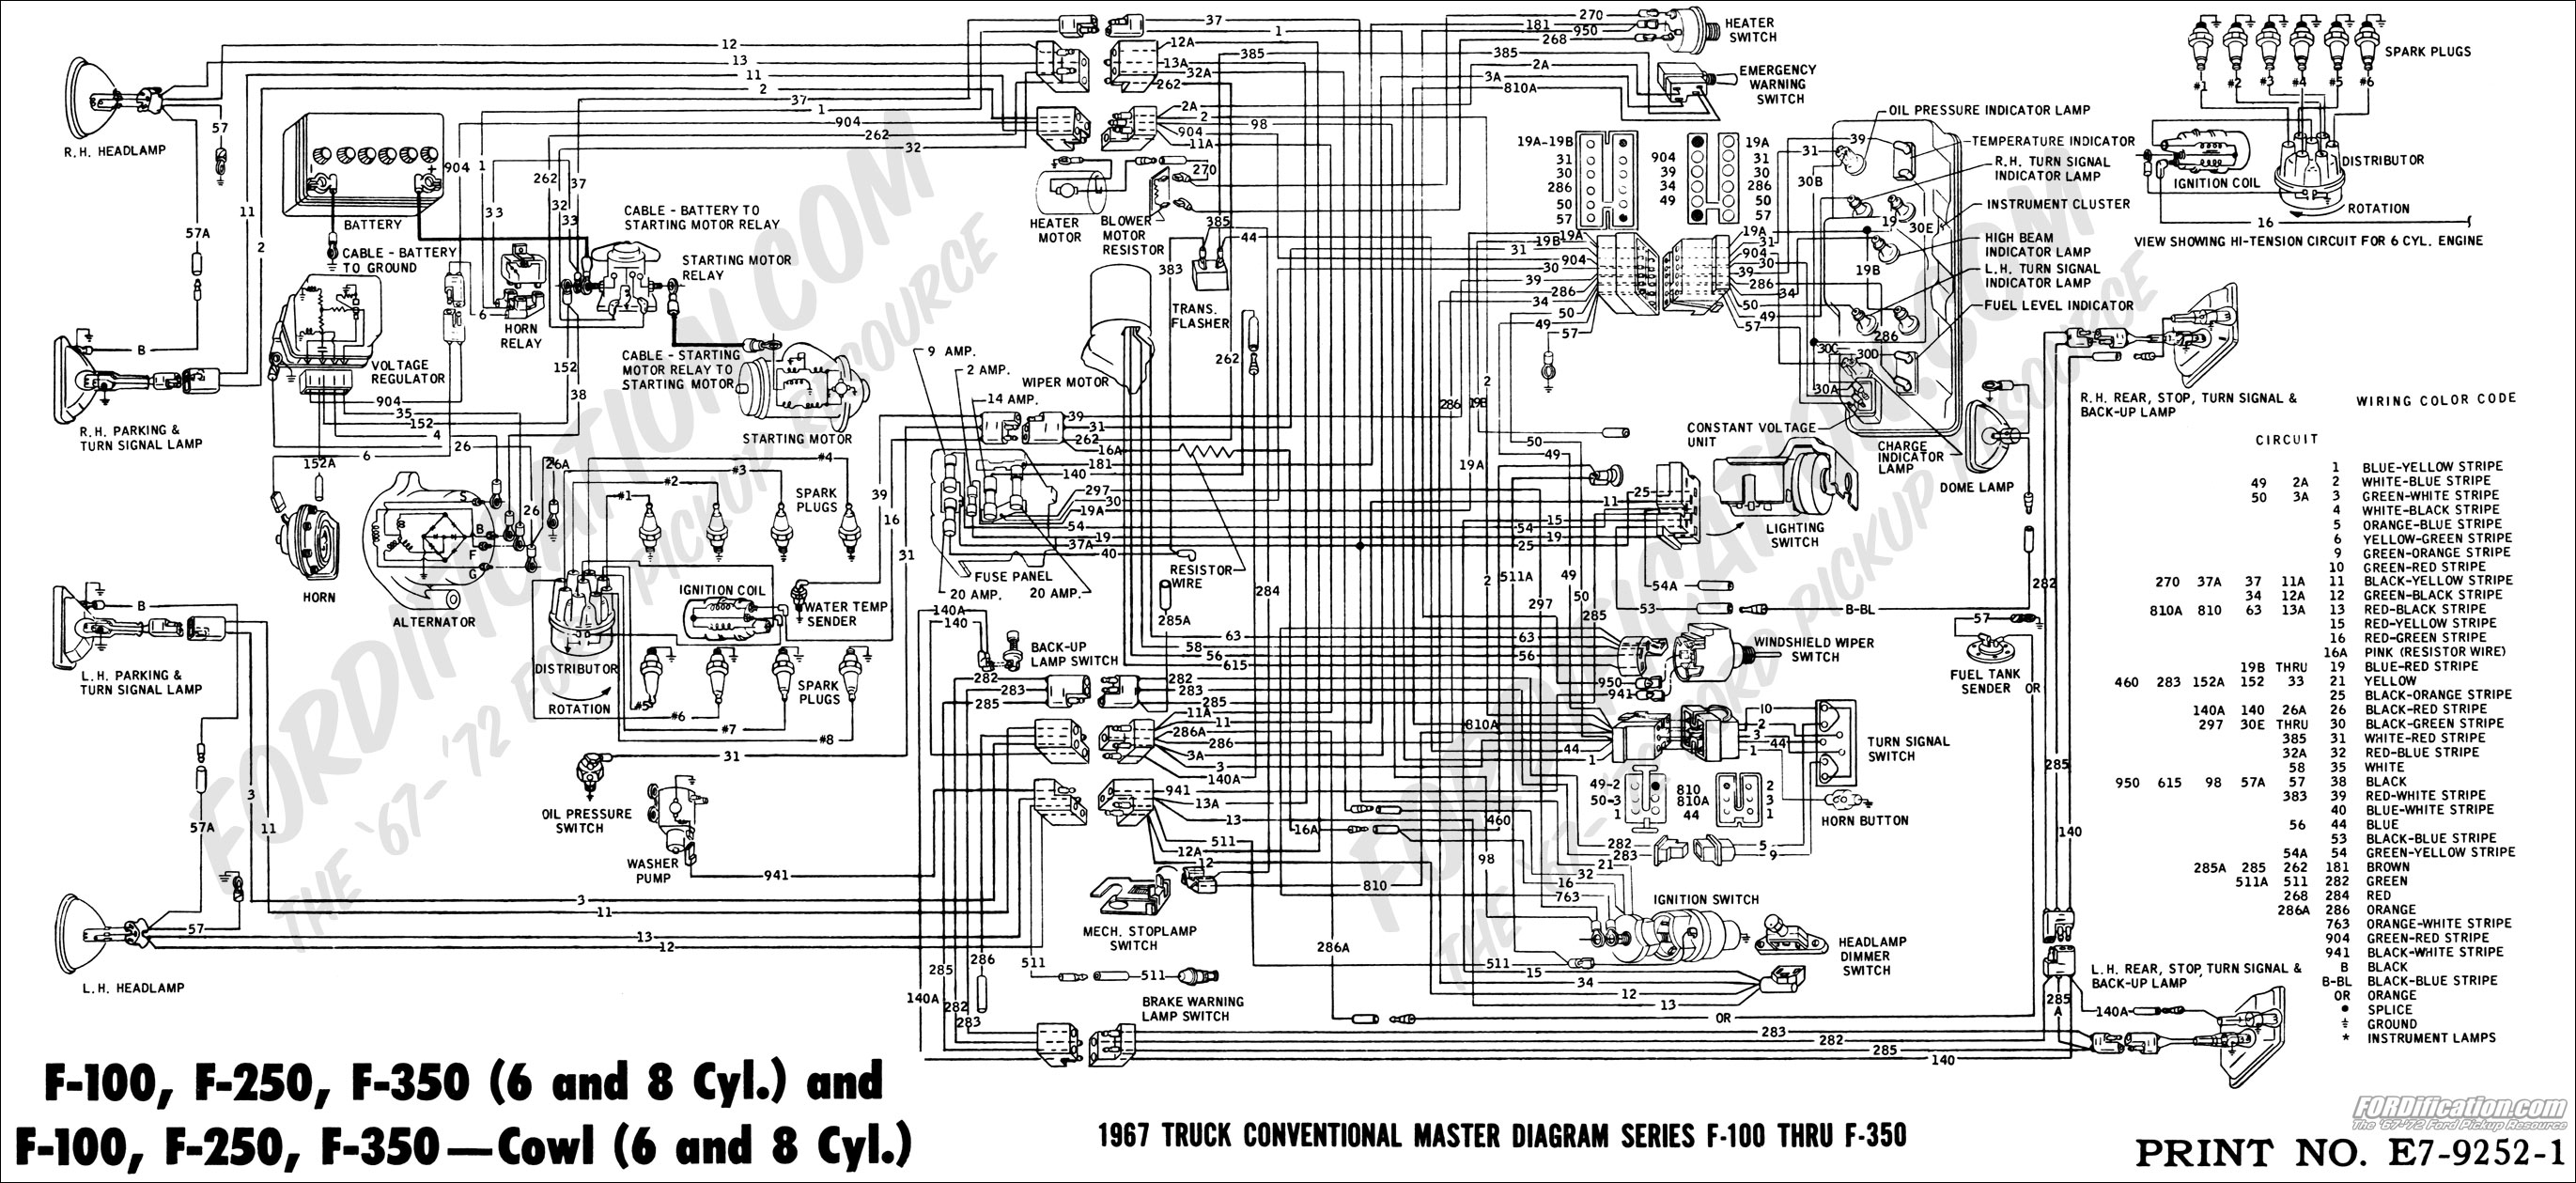 67masterdiagram 07 f150 starter wiring diagram 07 f150 wiring diagram \u2022 wiring wiring diagram for 2002 f250 starter at honlapkeszites.co